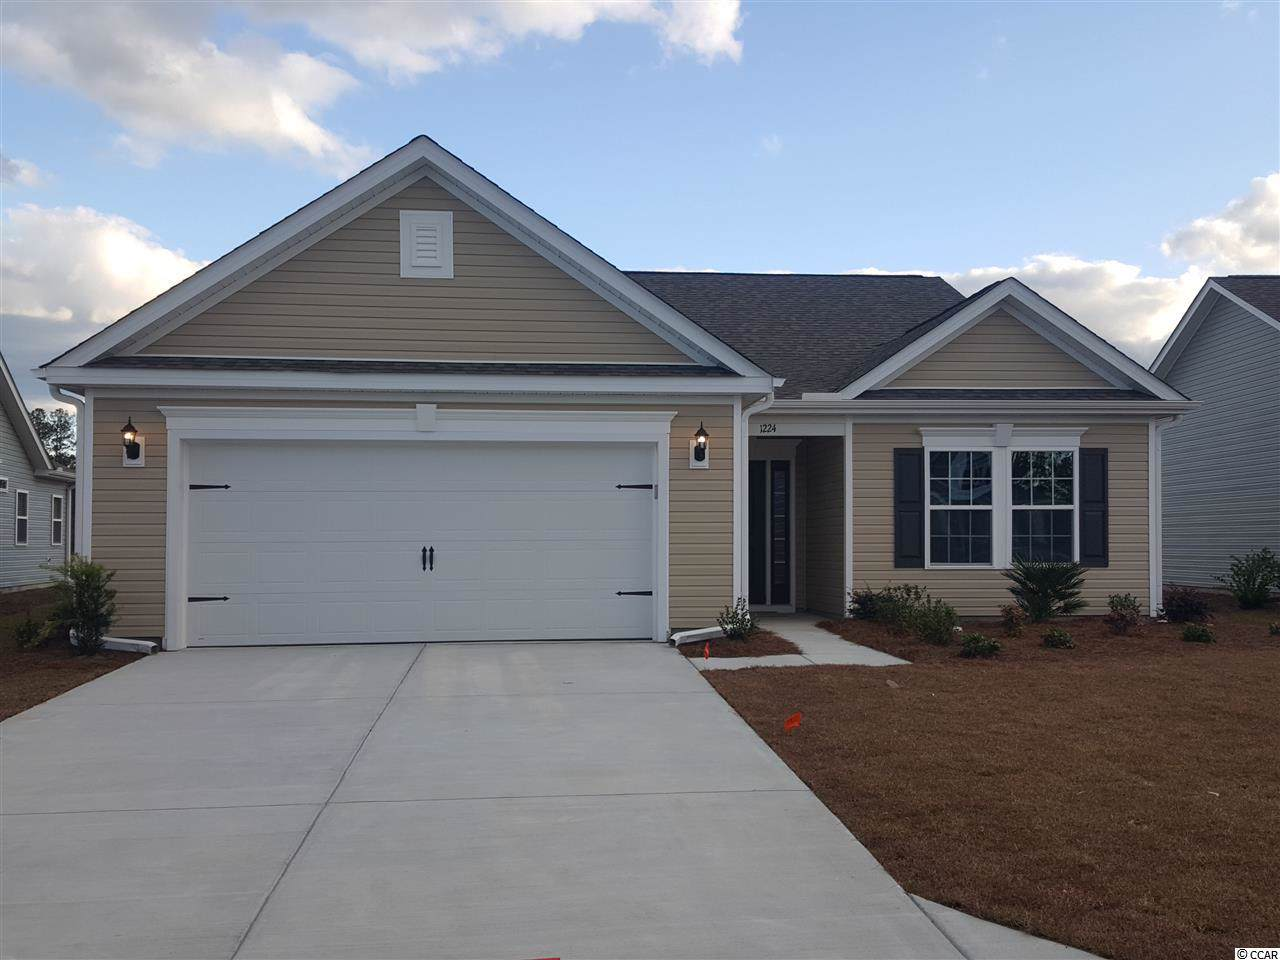 1224 Palm Crossing Dr. - Photo 1